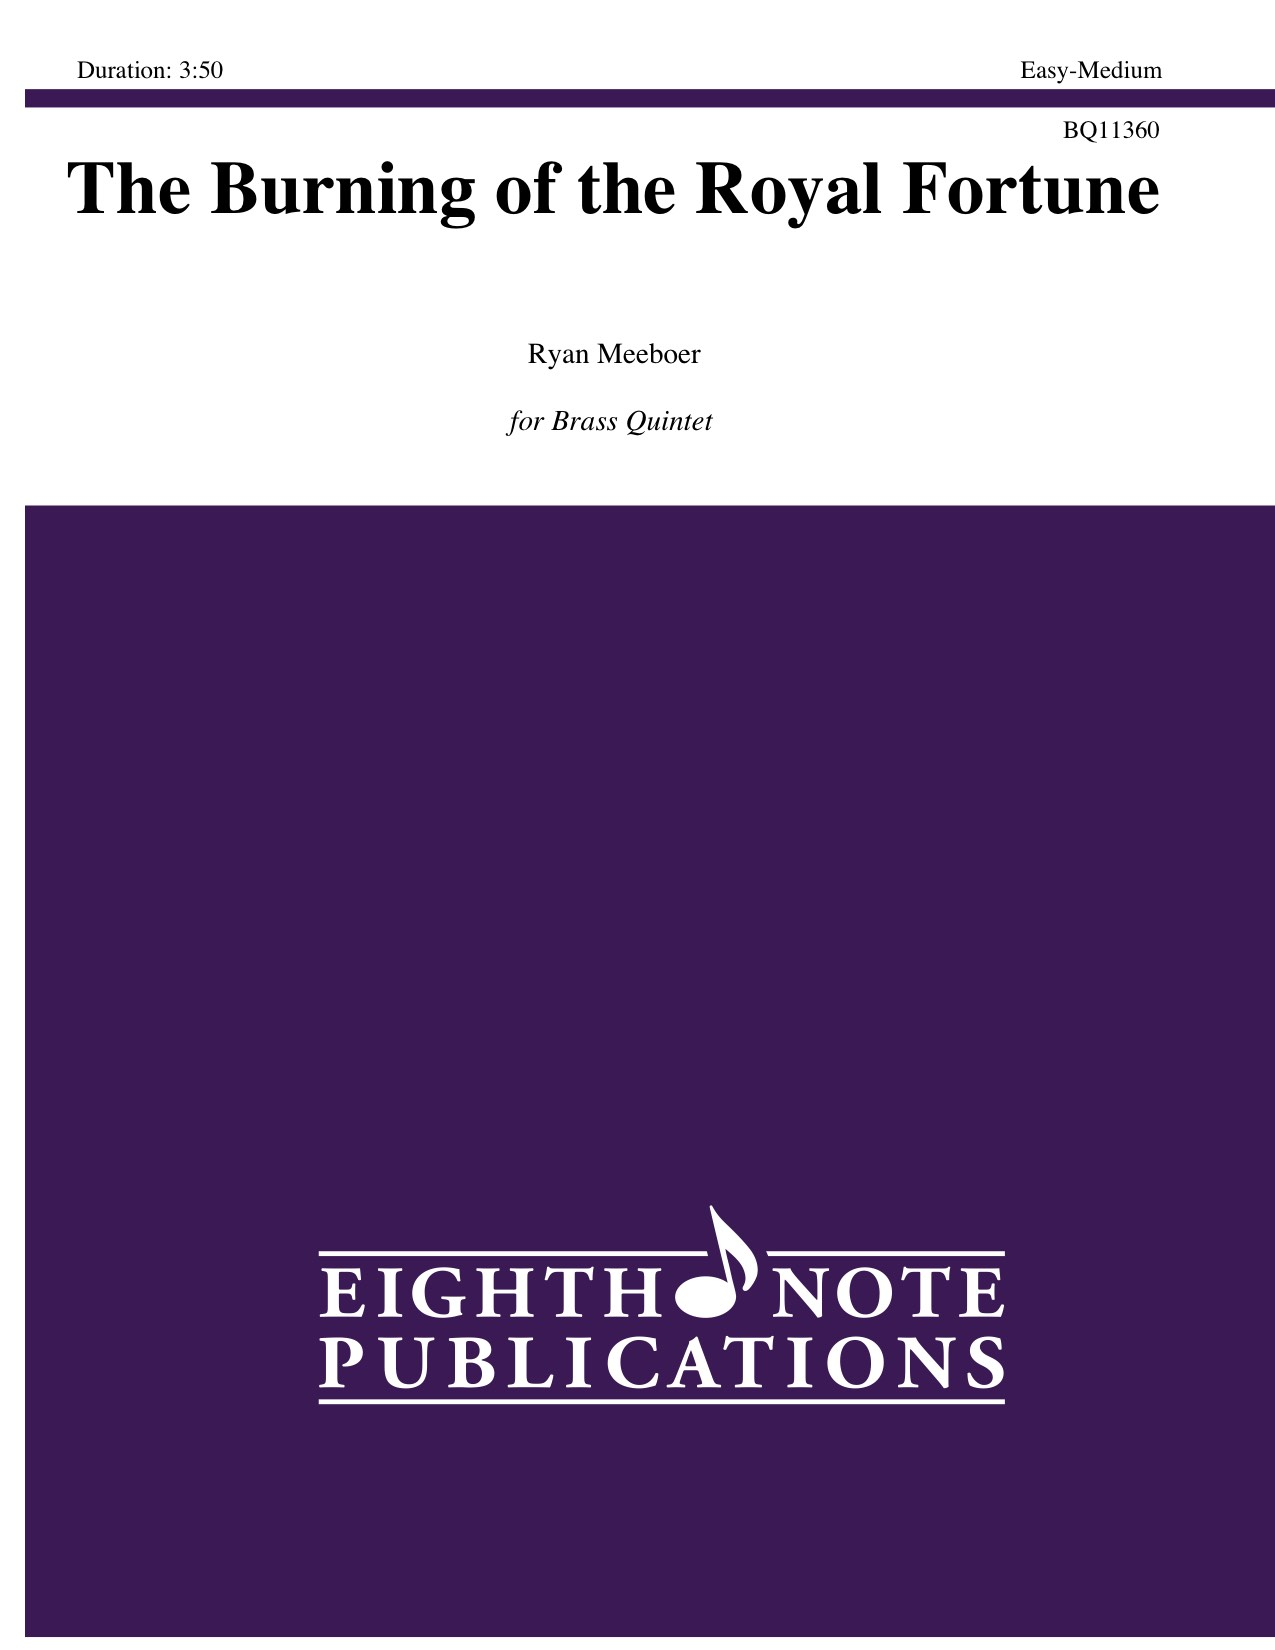 Burning of the Royal Fortune, The - Ryan Meeboer